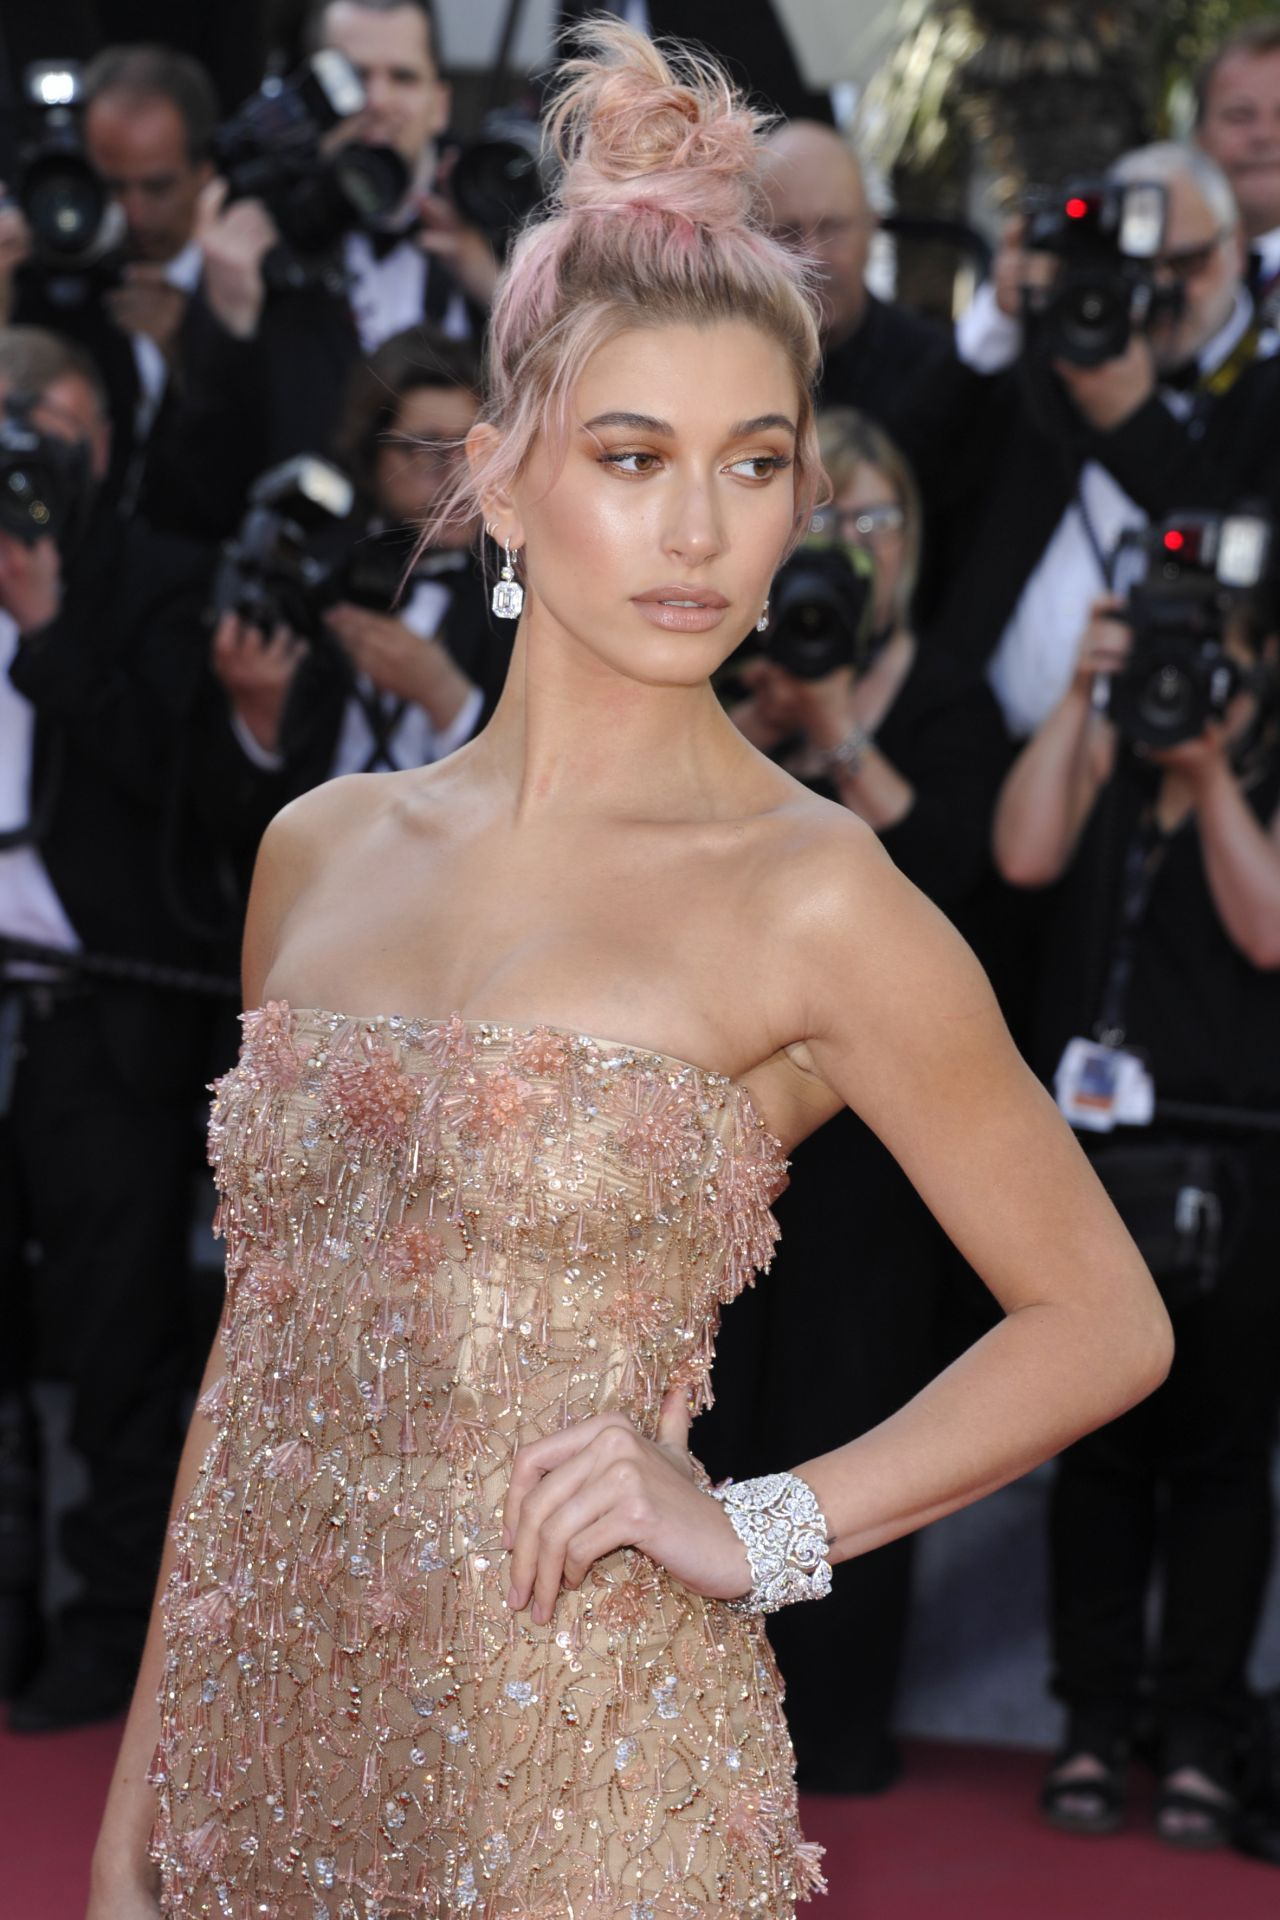 Hailey Baldwin Girls Of The Sun Premiere At Cannes